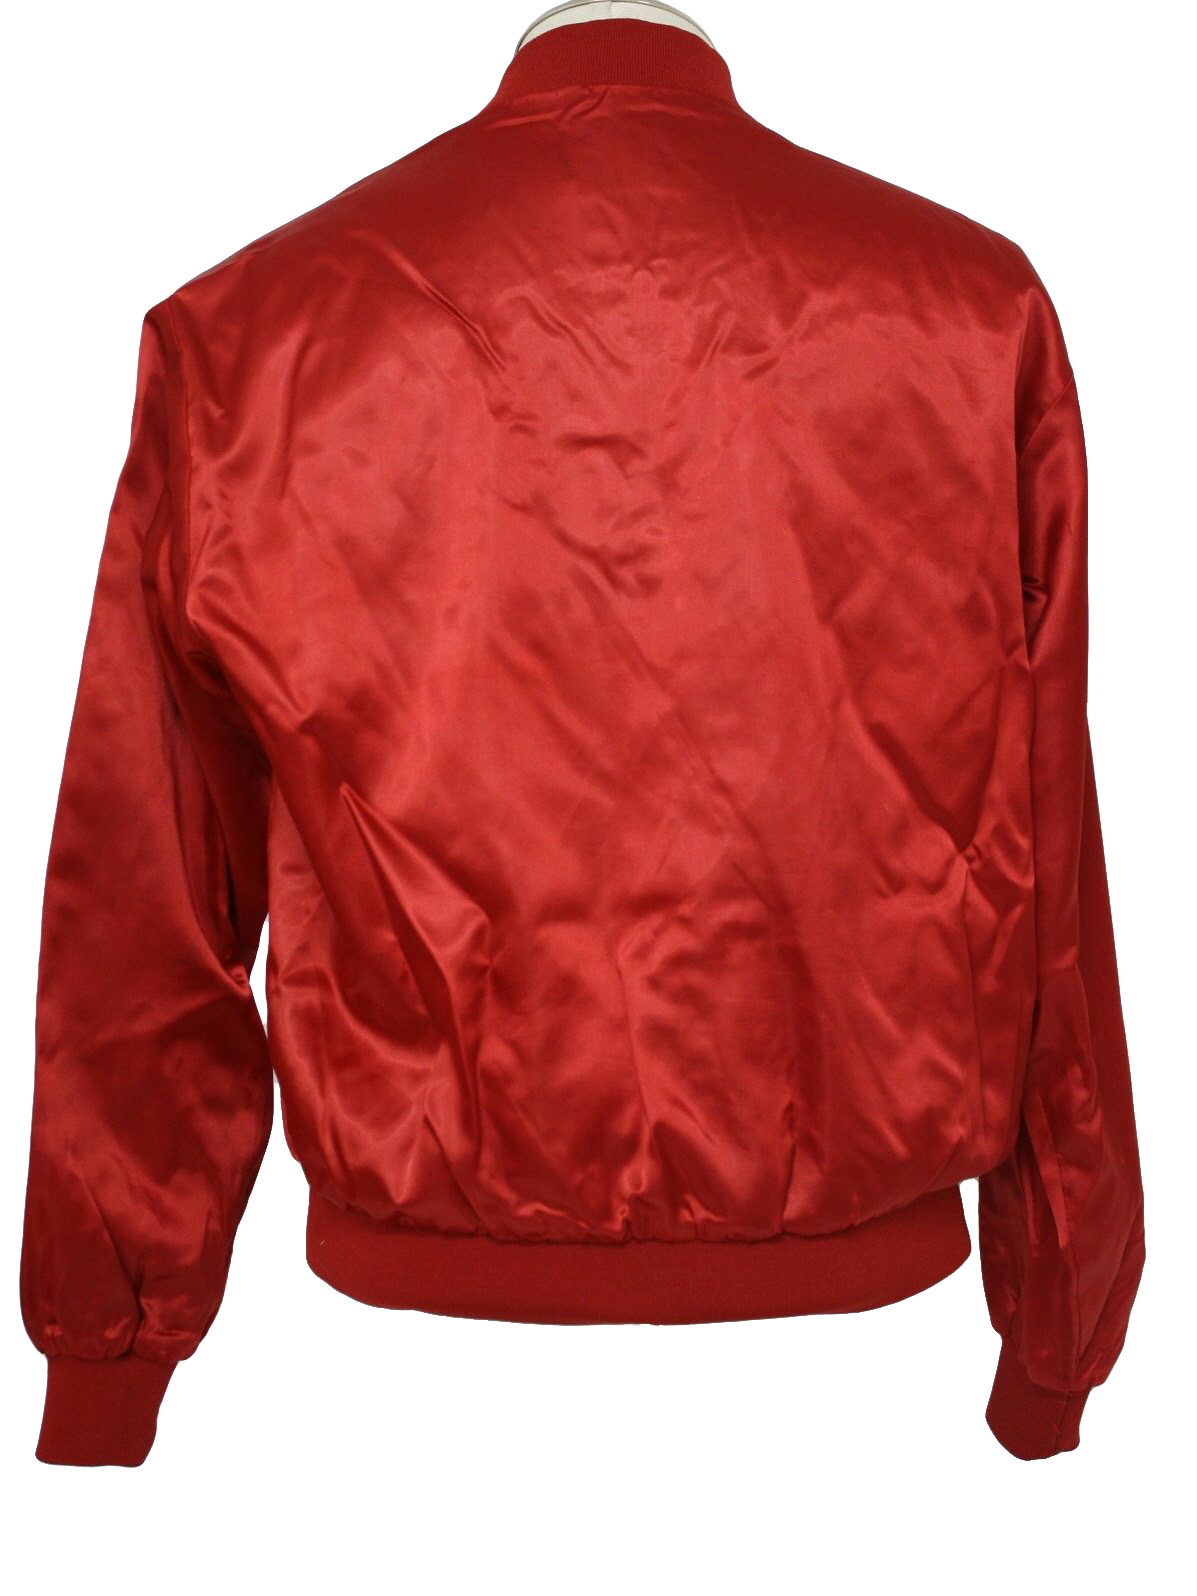 Vintage Anheuser Busch Eighties Jacket: 80s -Anheuser Busch- Mens ...